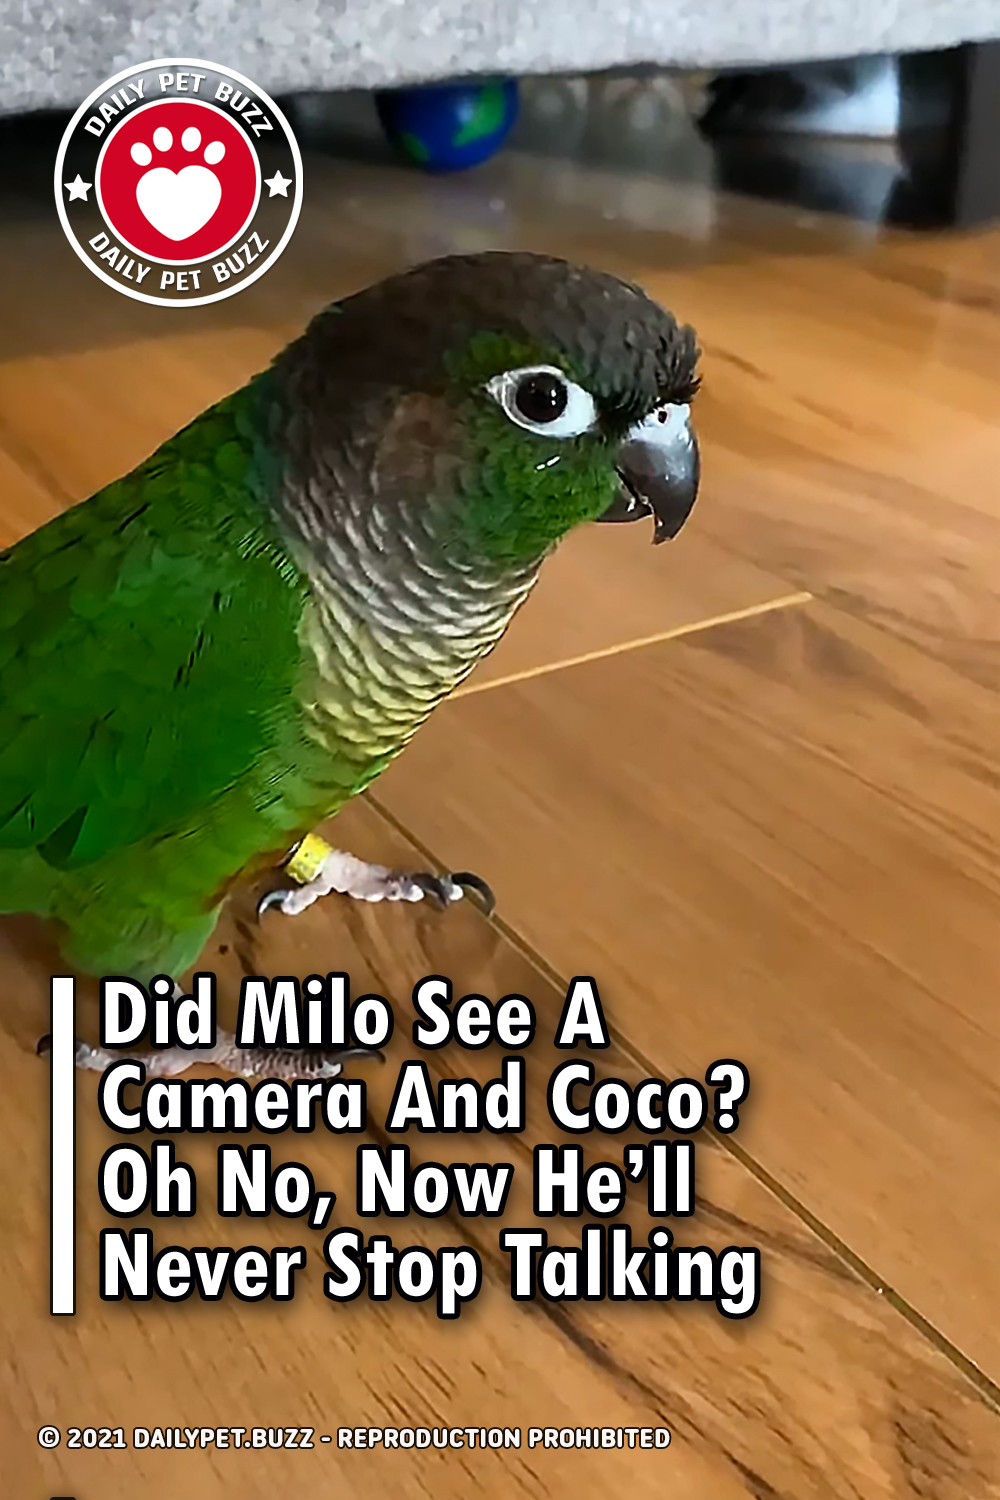 Did Milo See A Camera And Coco? Oh No, Now He'll Never Stop Talking